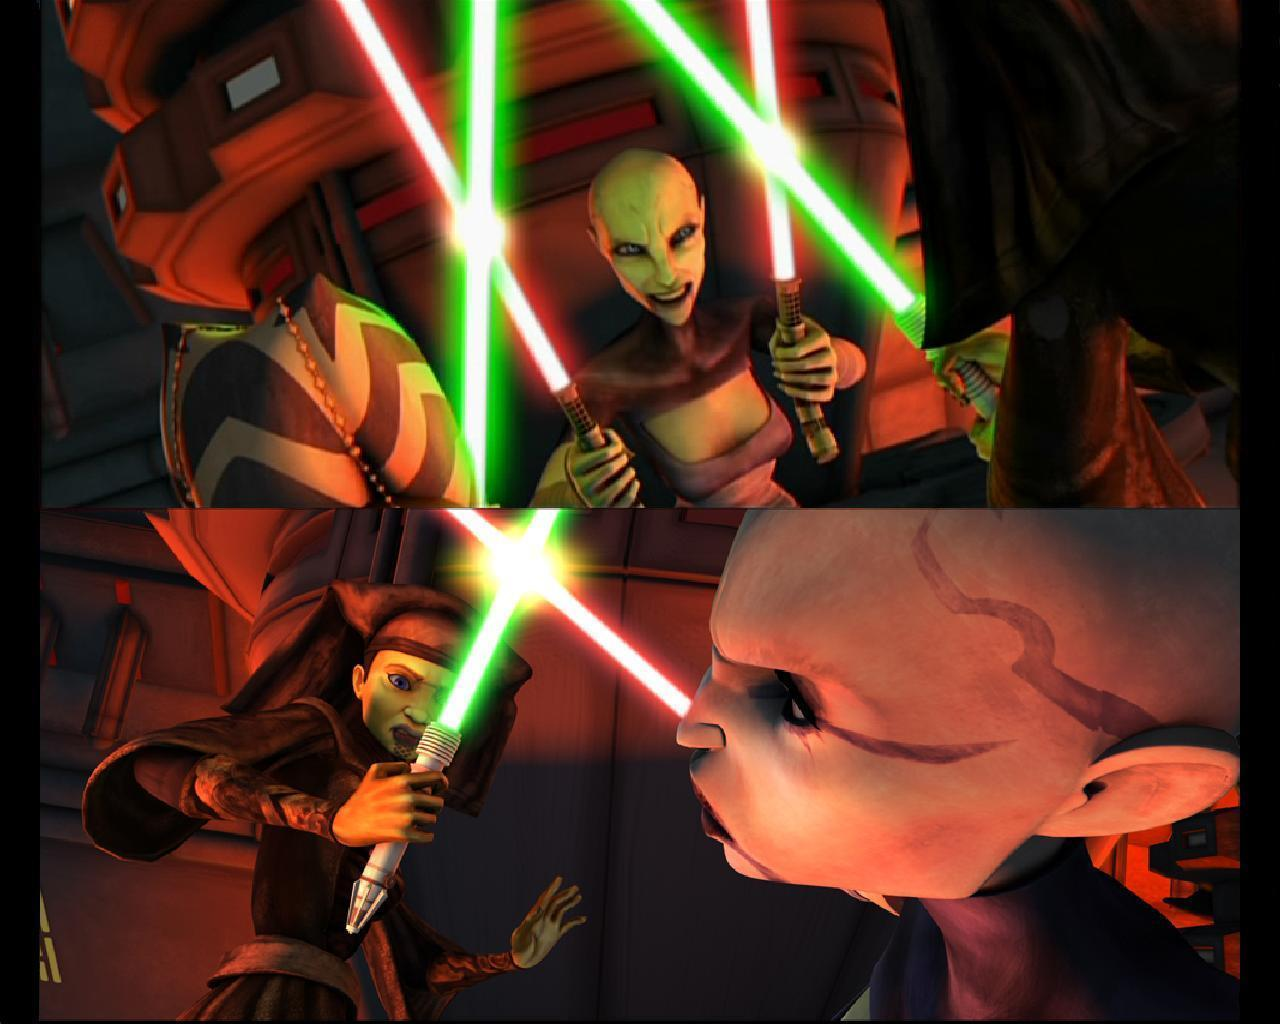 CLONE WARS episode 9 vazi, pazia of Darkness